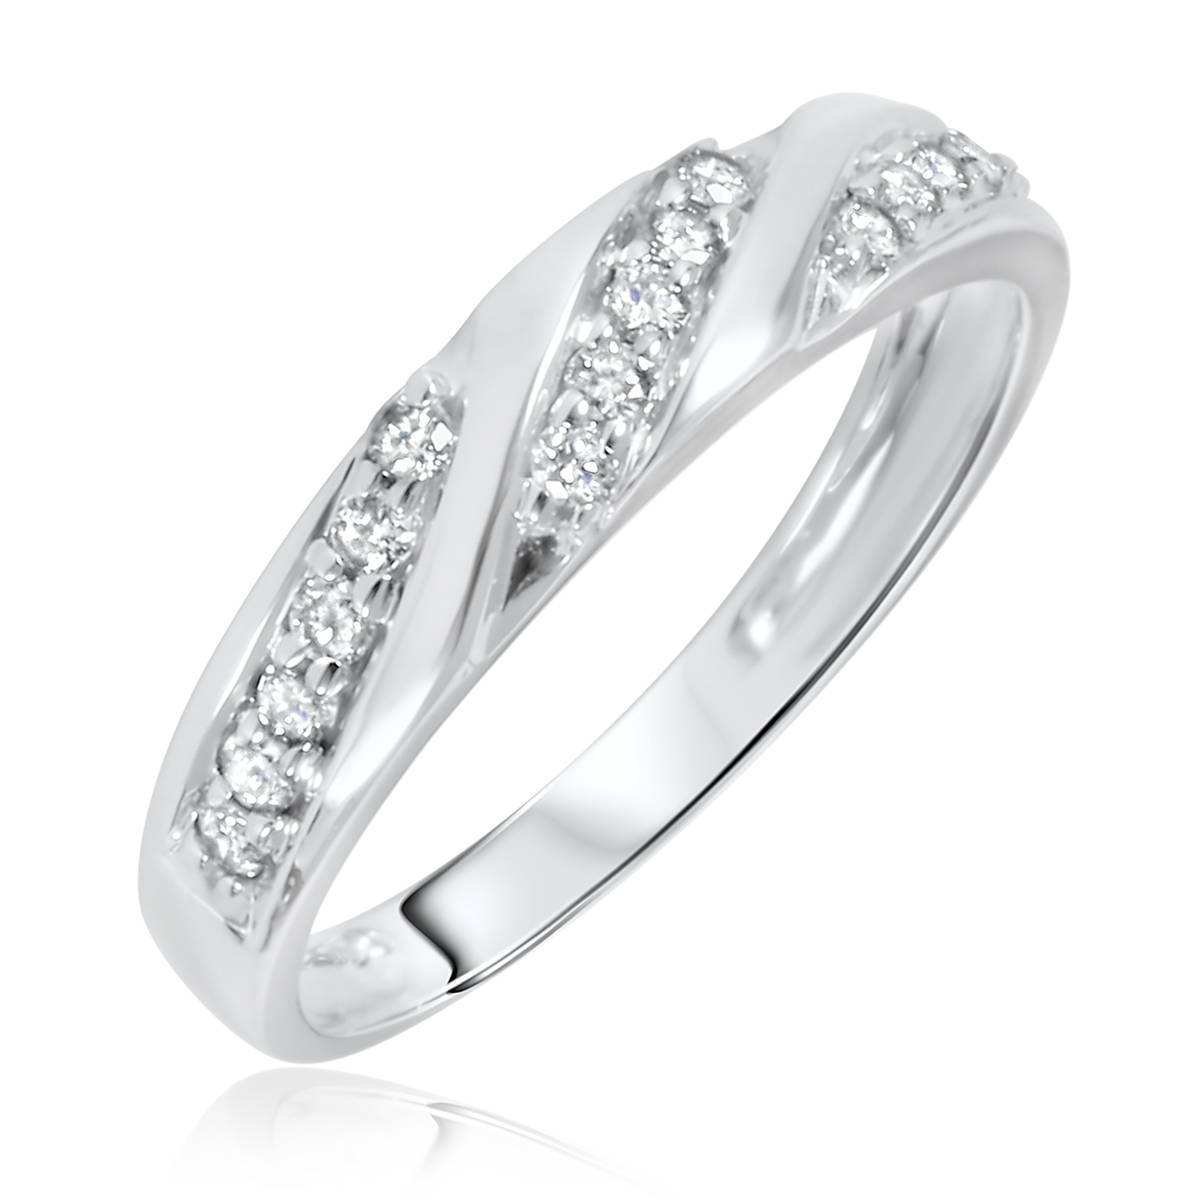 1 Carat Diamond Trio Wedding Ring Set 10K White Gold Throughout 2018 Women White Gold Wedding Bands (View 1 of 15)